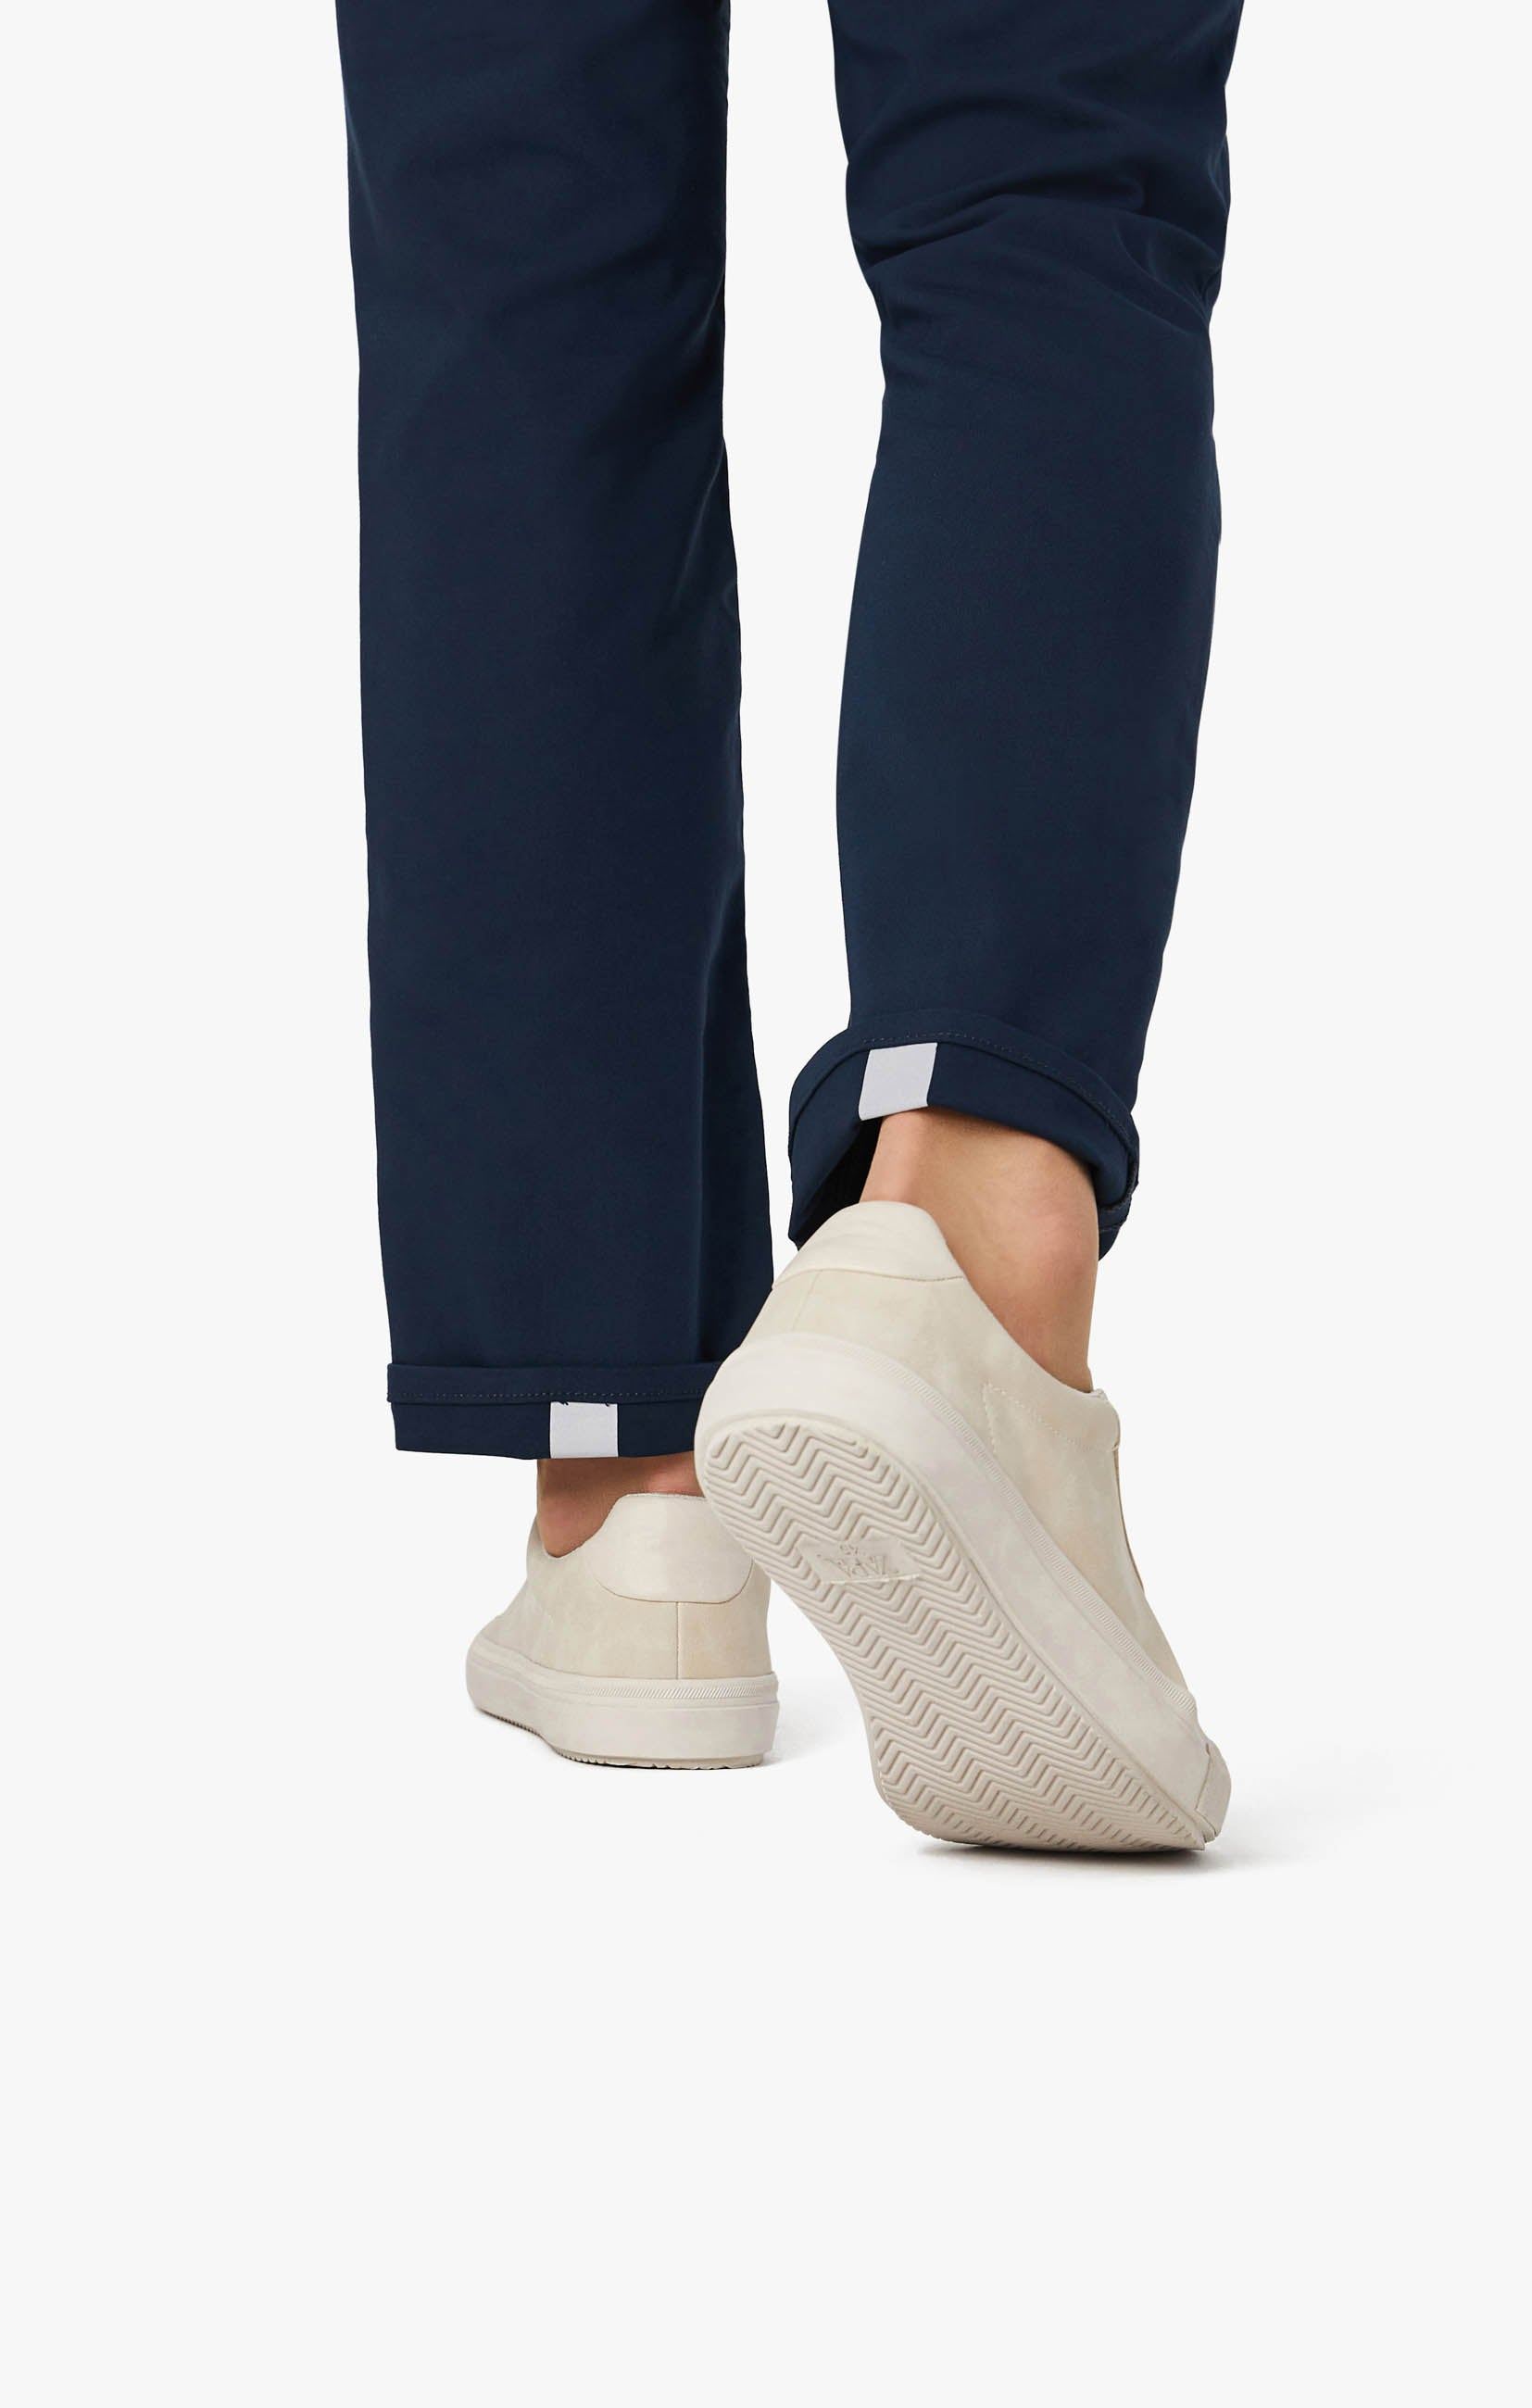 Charisma Relaxed Straight Commuter Pants In Navy Image 8